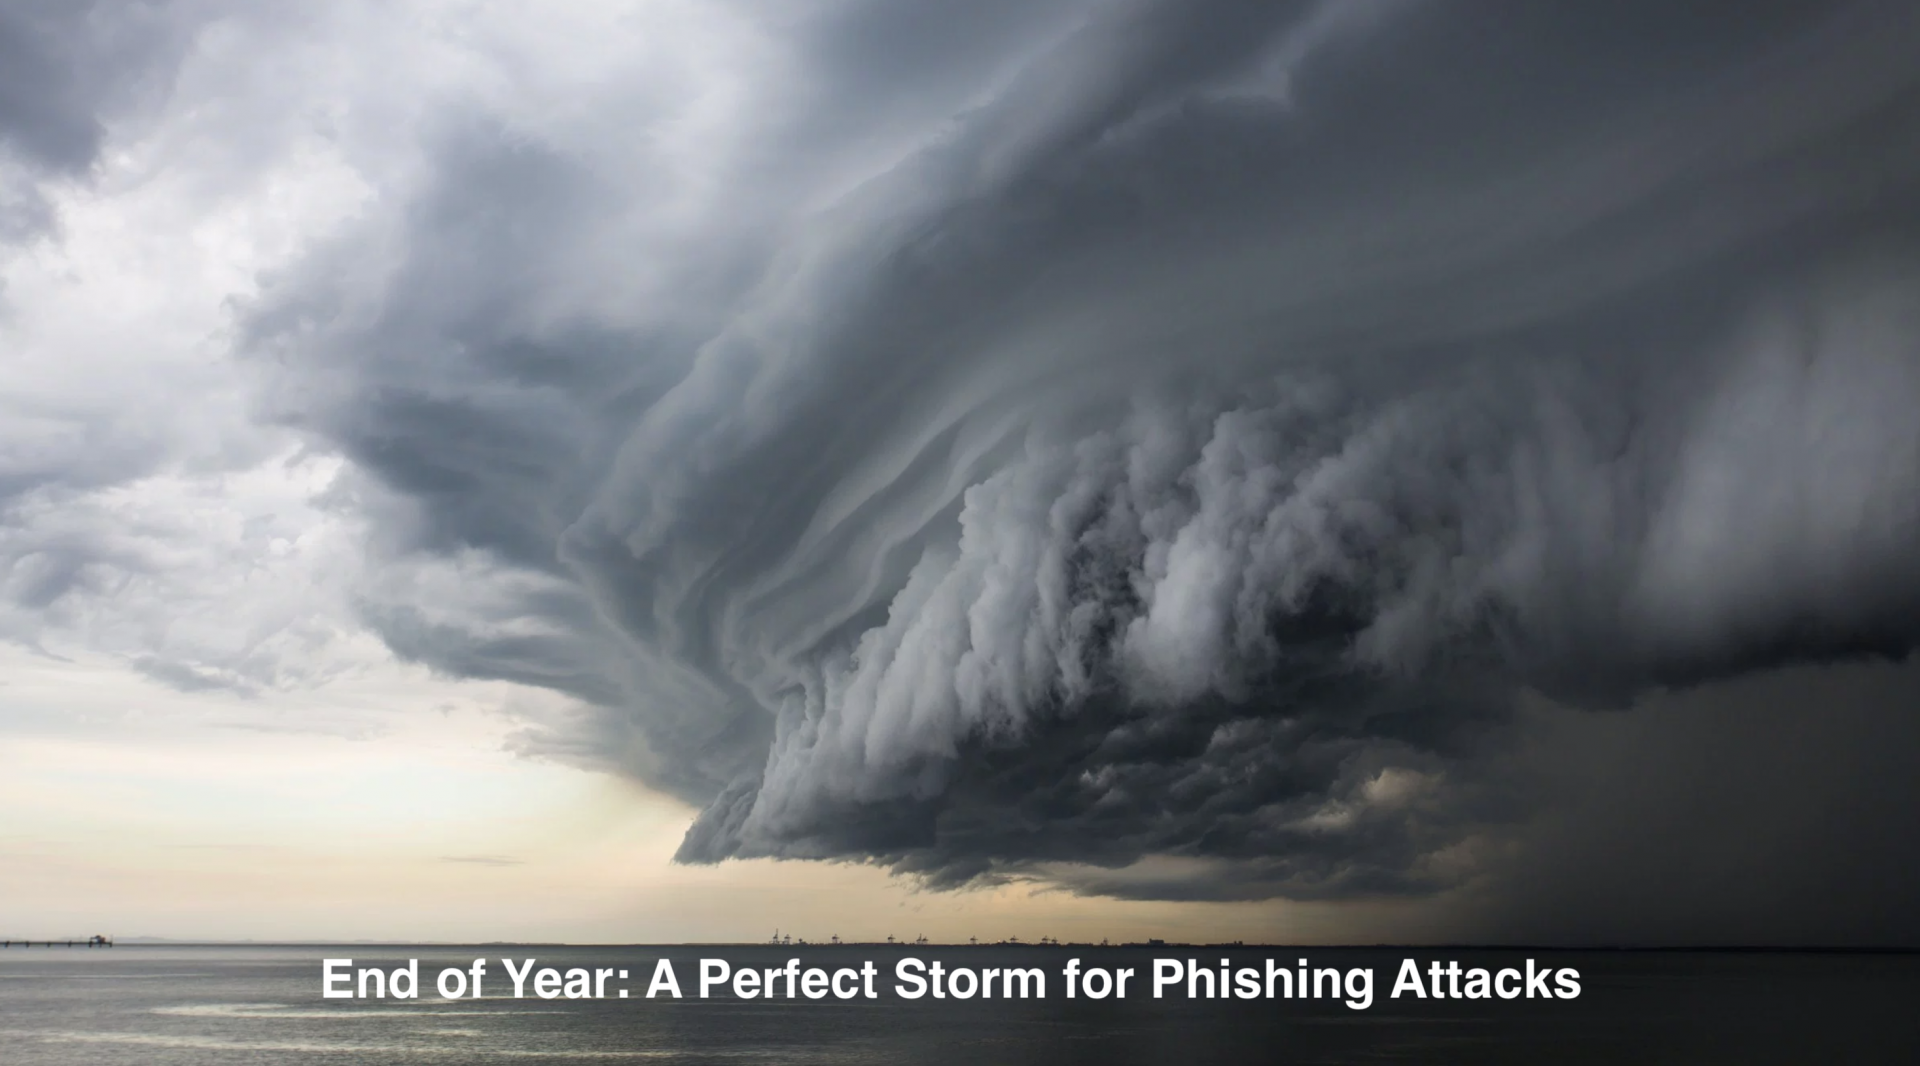 End of Year: Perfect Storm for Phishing Attacks